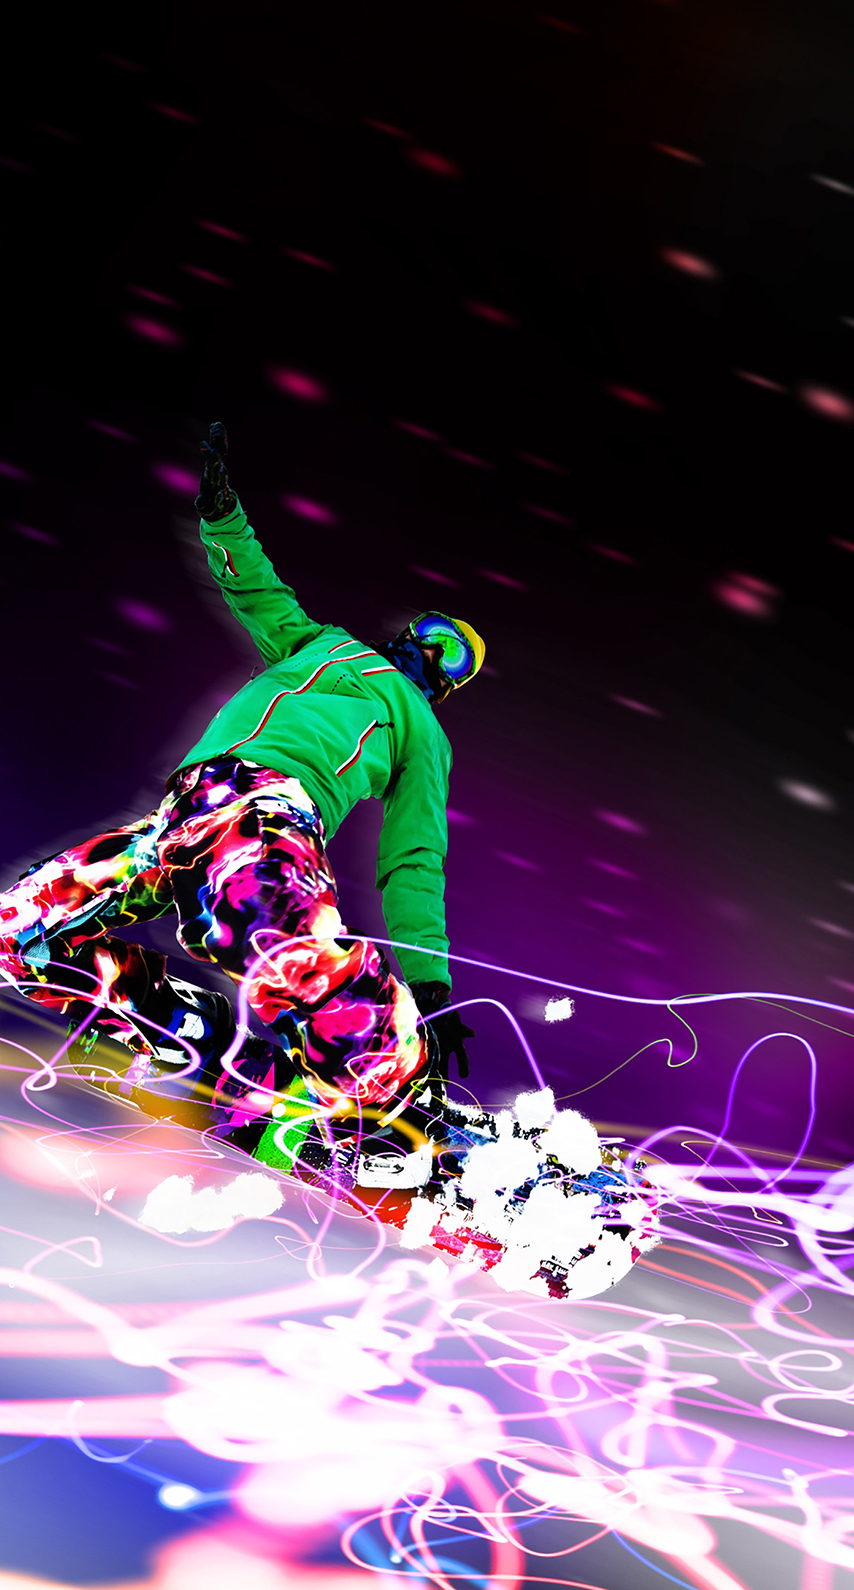 purple, snowboarding